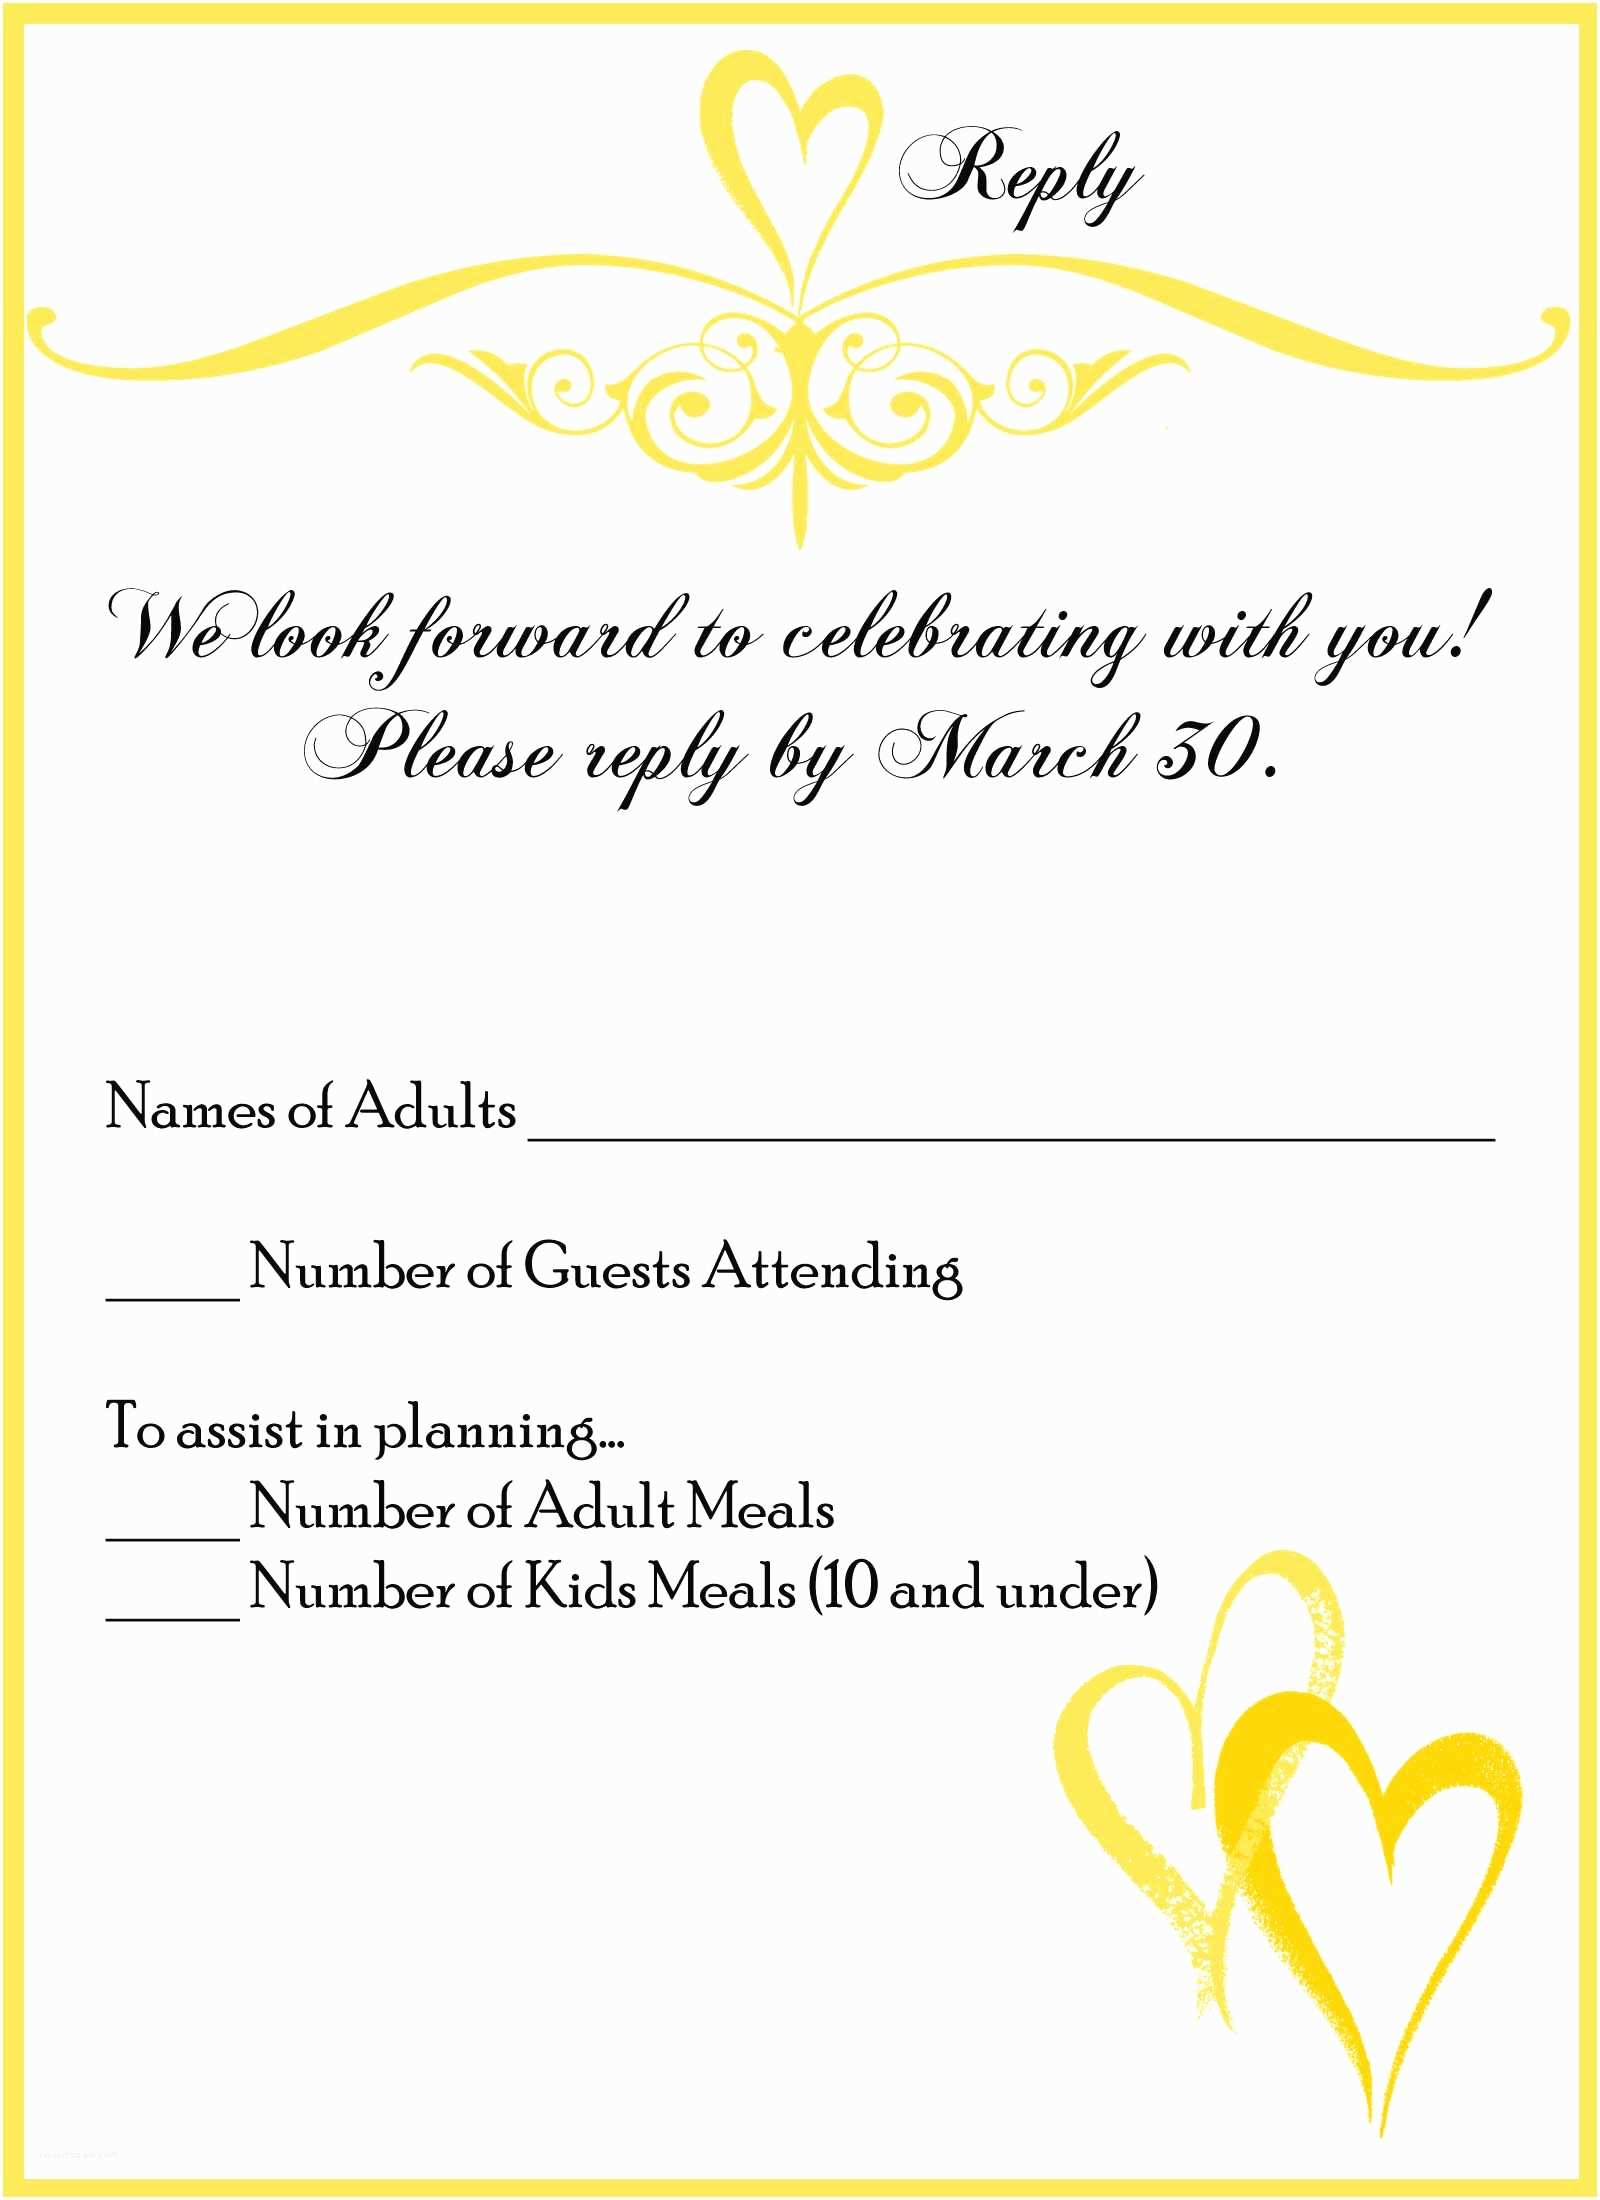 Wedding Invitation Rsvp Wording Samples Wedding Invitation Response Card Wording Various